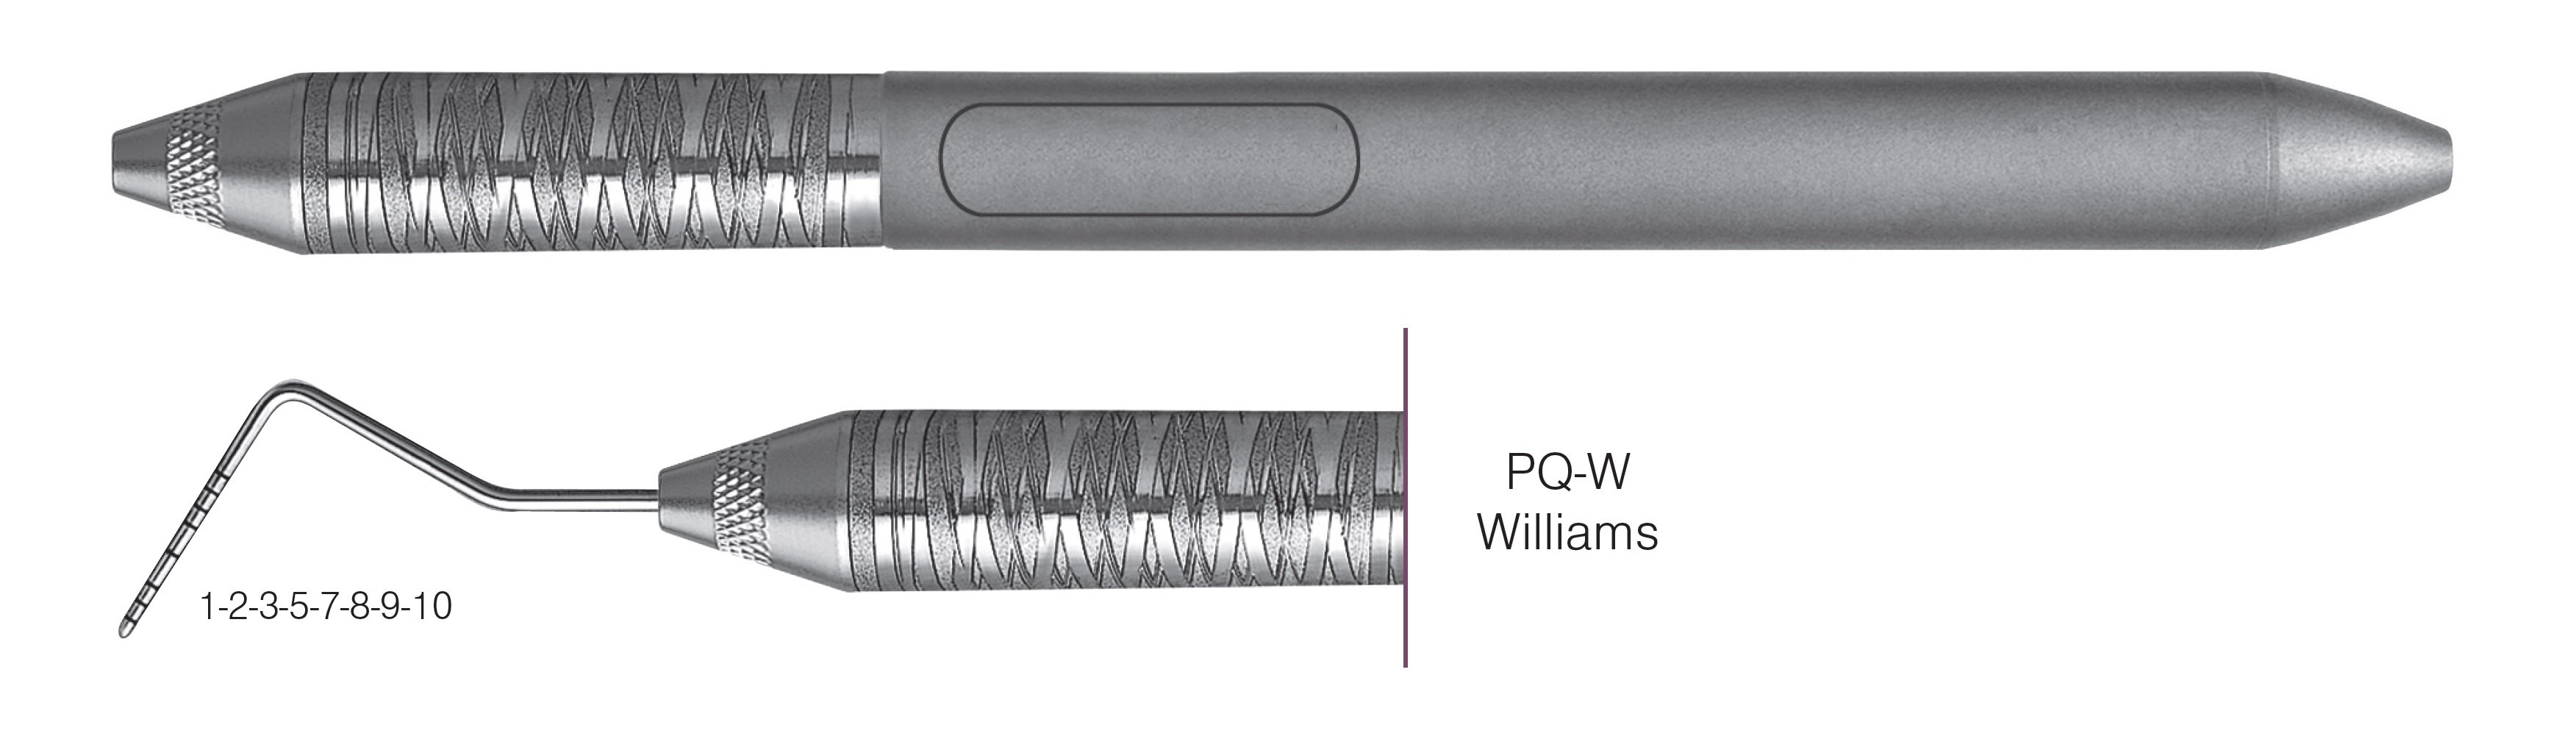 HF-PQW6-6, COLOR-CODED PROBES PQ-W Williams, Black markings, 1-2-3-5-7-8-9-10 mm, Handle Satin Steel, Aluminum Titanium Nitride (AlTiN) coating, Single End